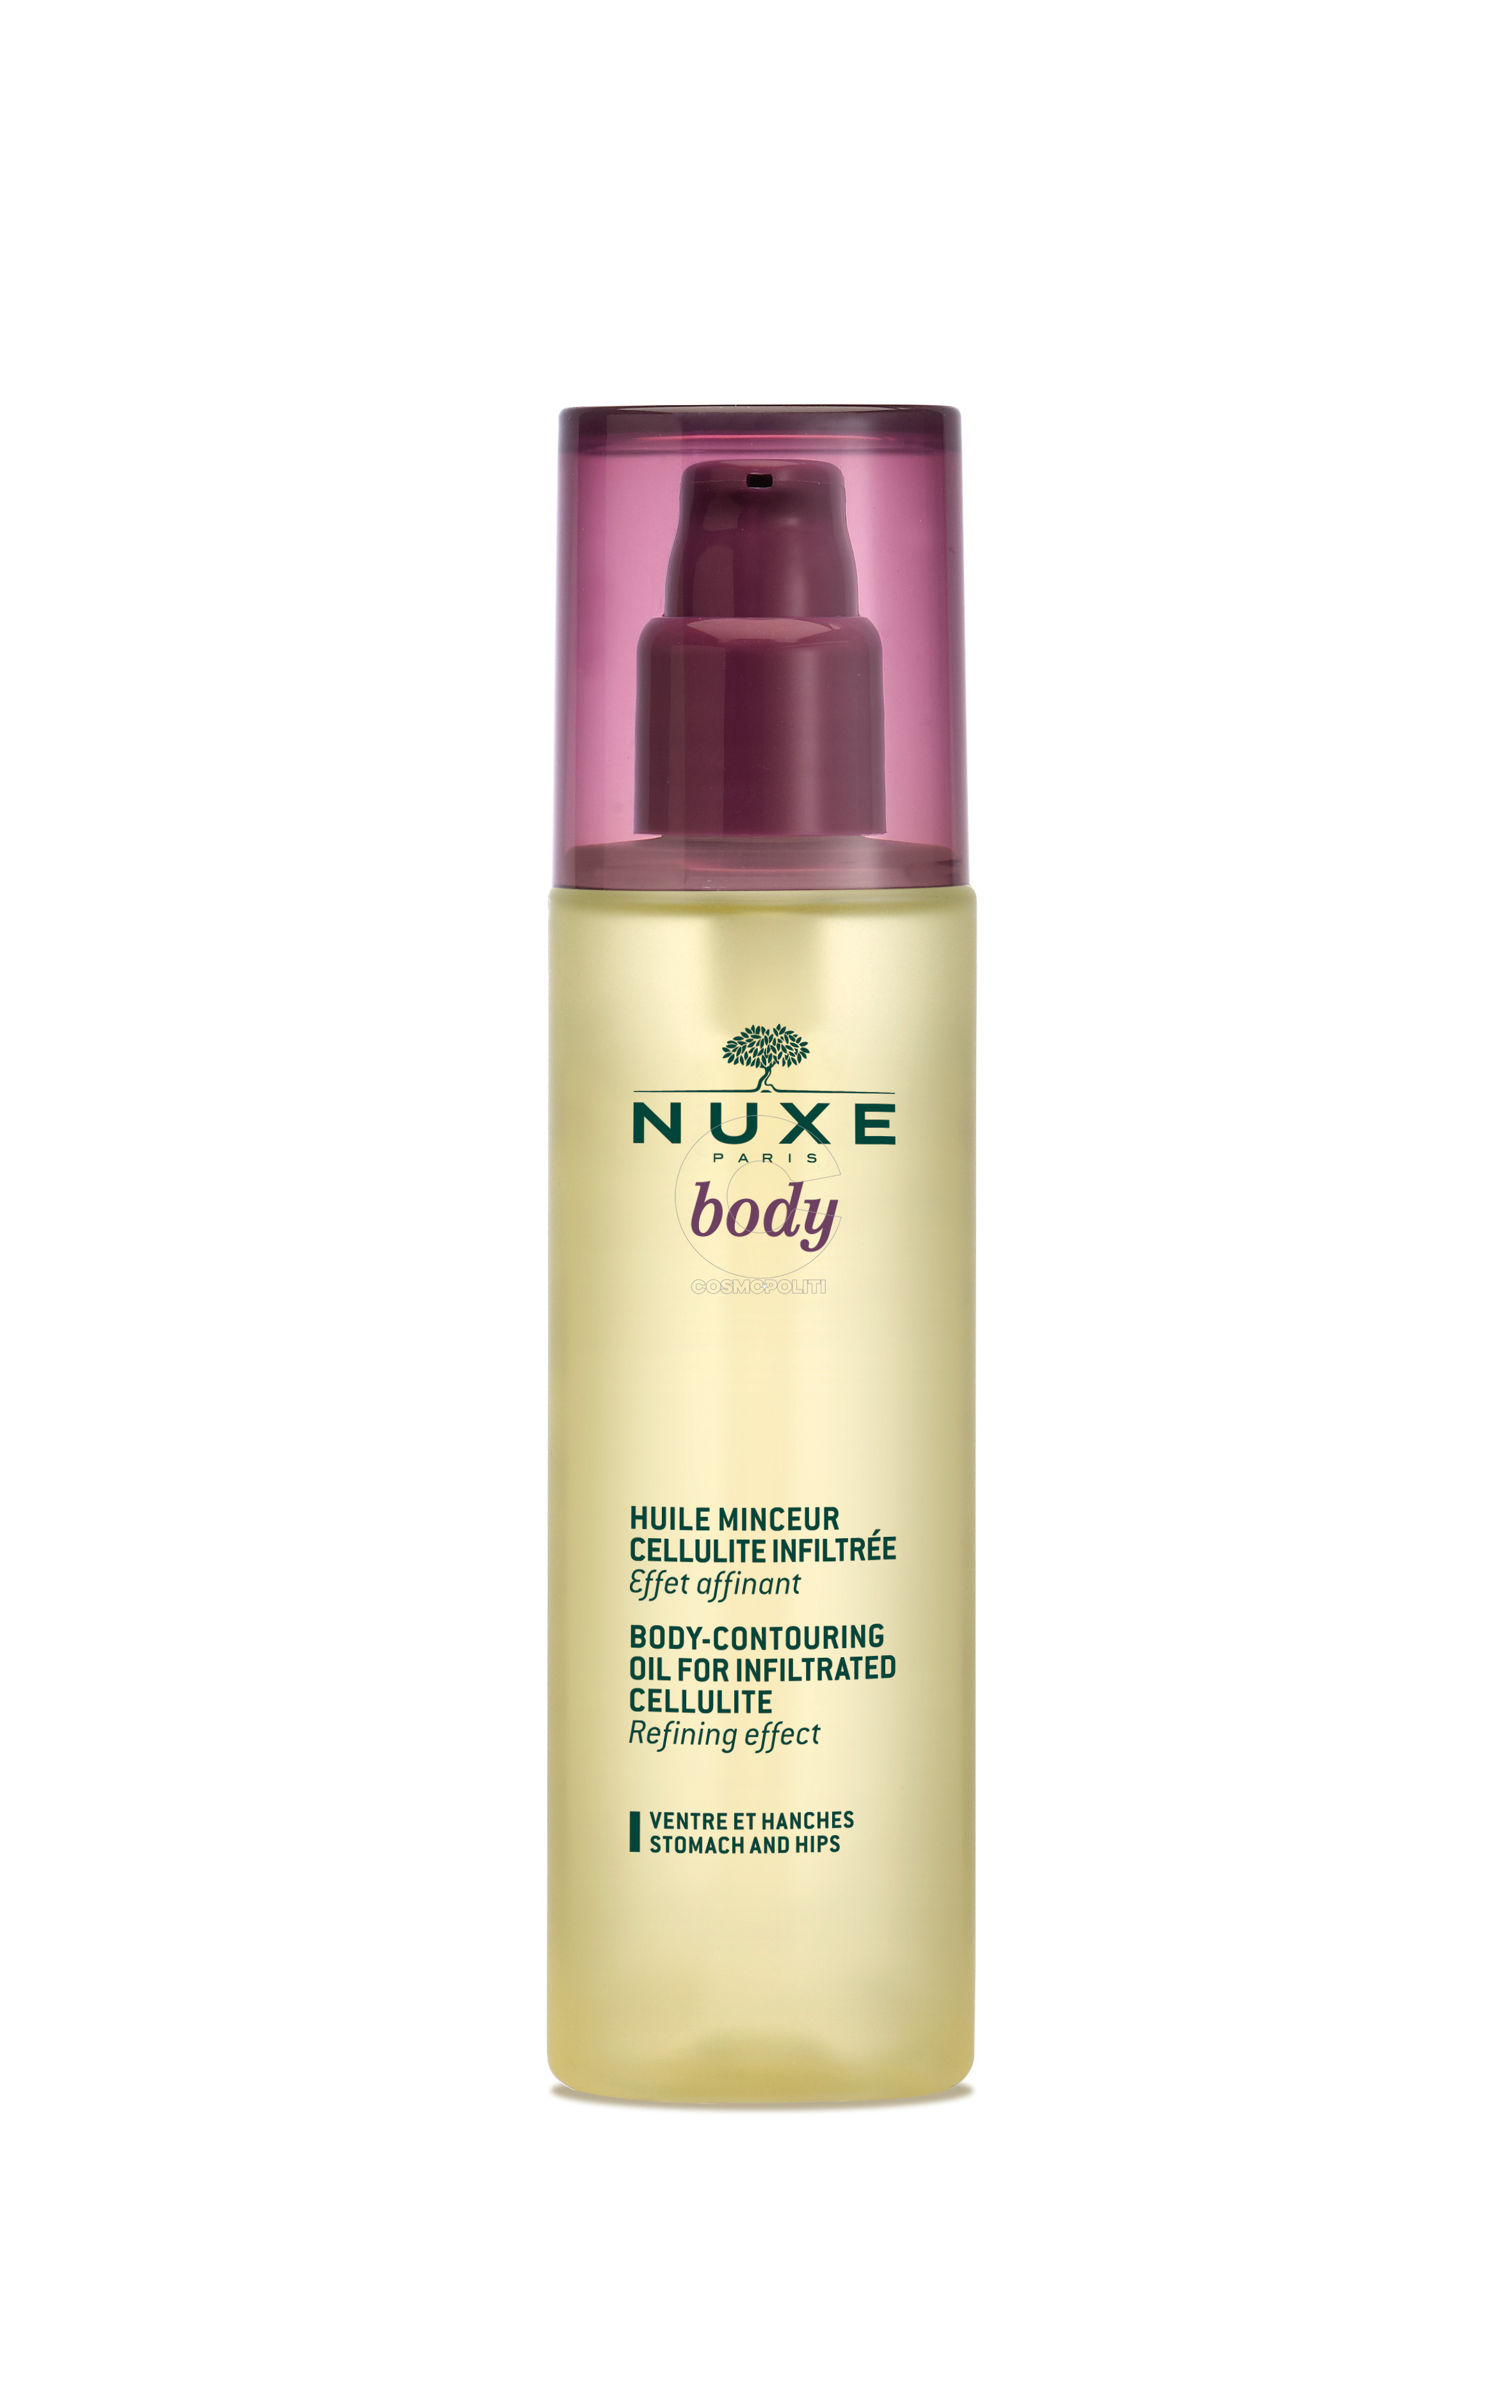 1501593921-NUX-BODY-Huile